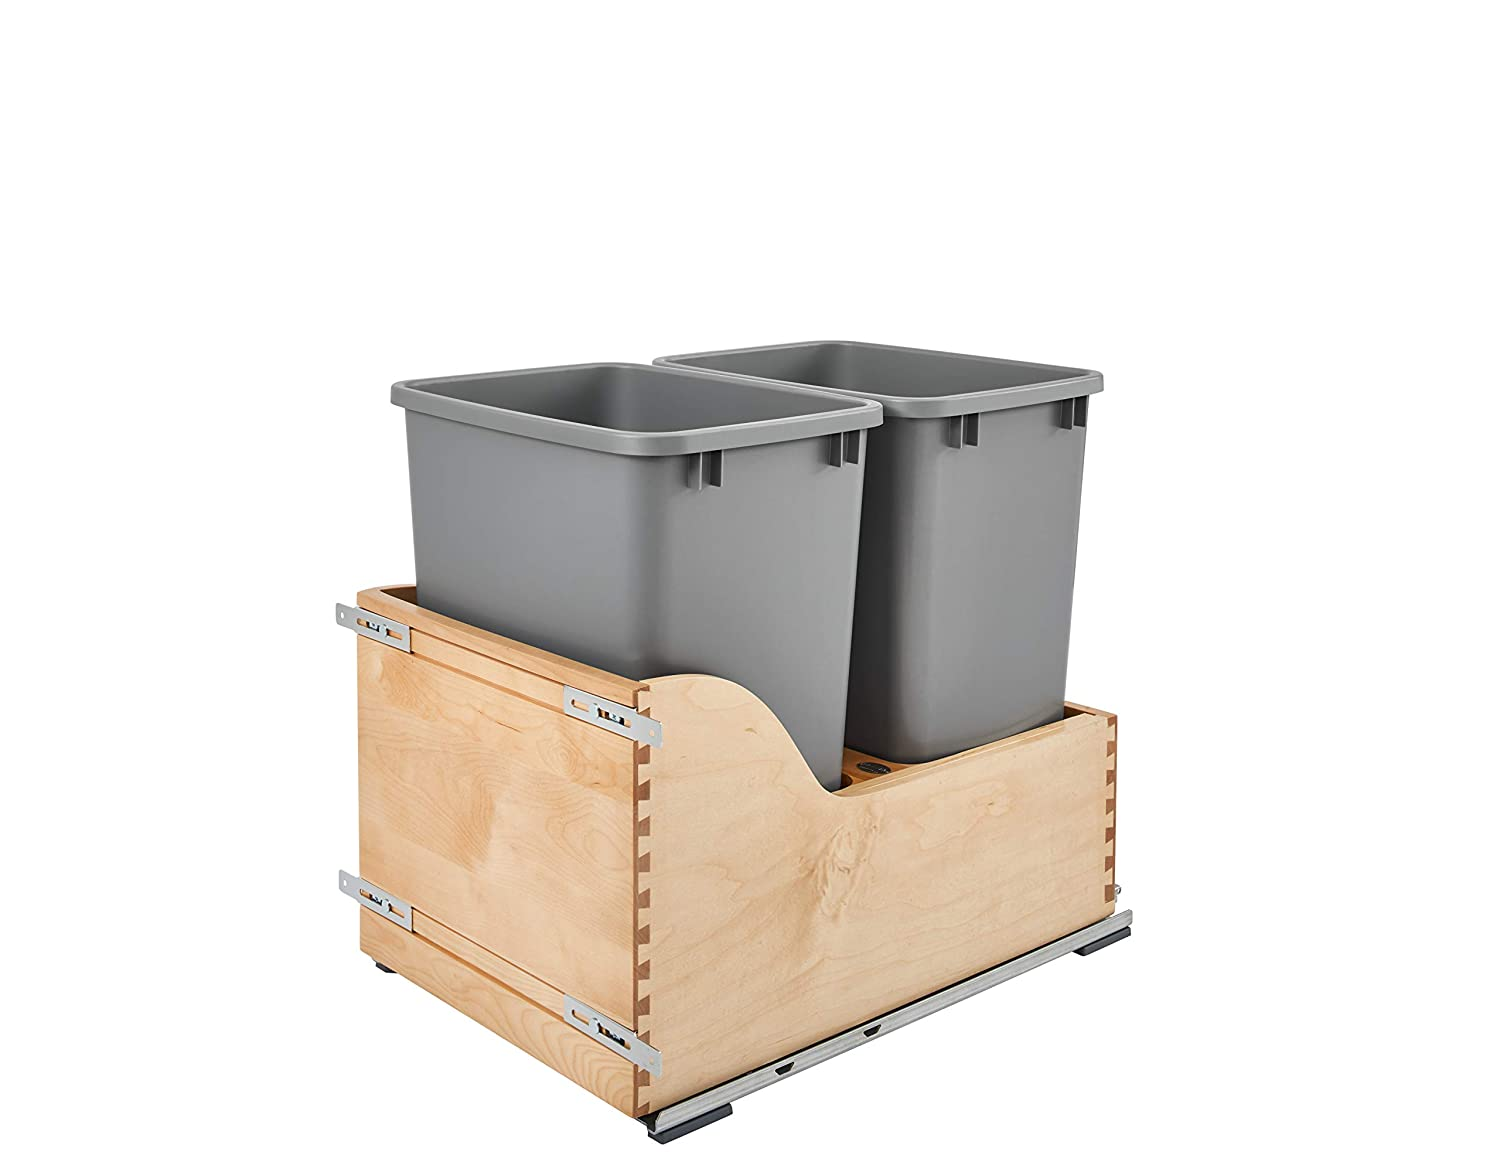 Rev-A-Shelf - 4WCSC-1835DM-2 - Double 35 Qt. Pull-Out Bottom Mount Wood and Silver Waste Container with Soft-Close Slides